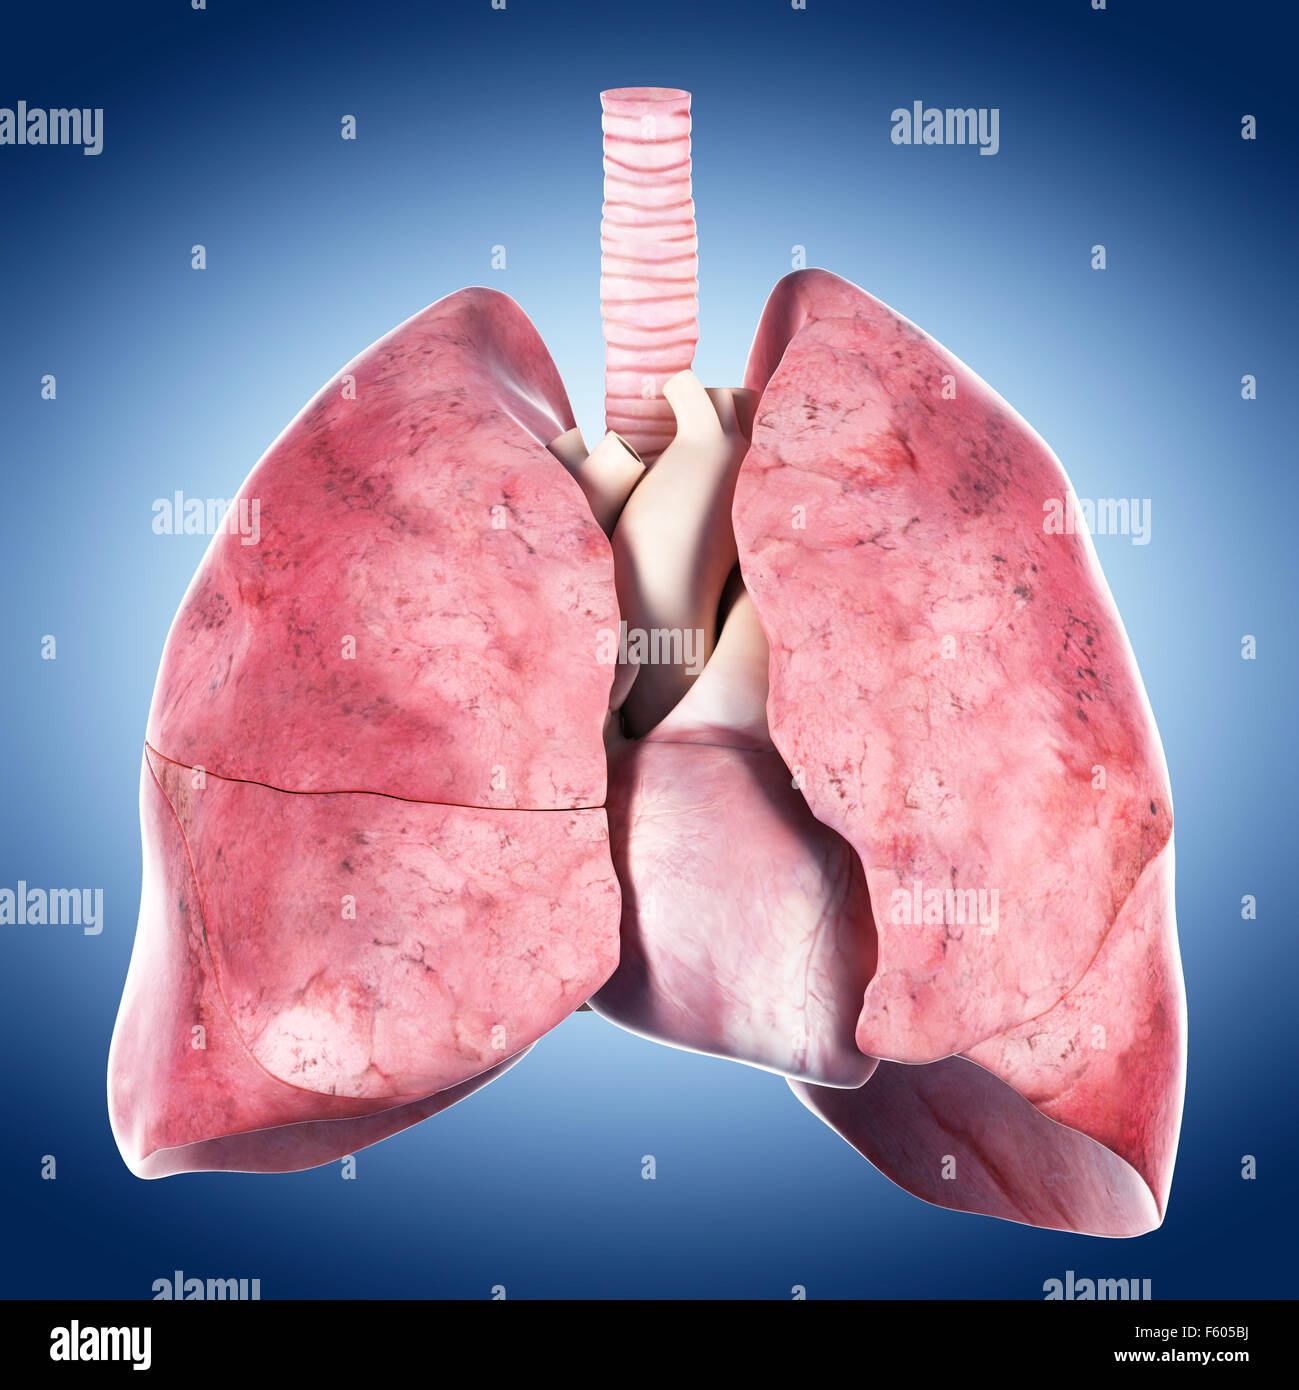 medically accurate illustration of the heart and lung - Stock Image